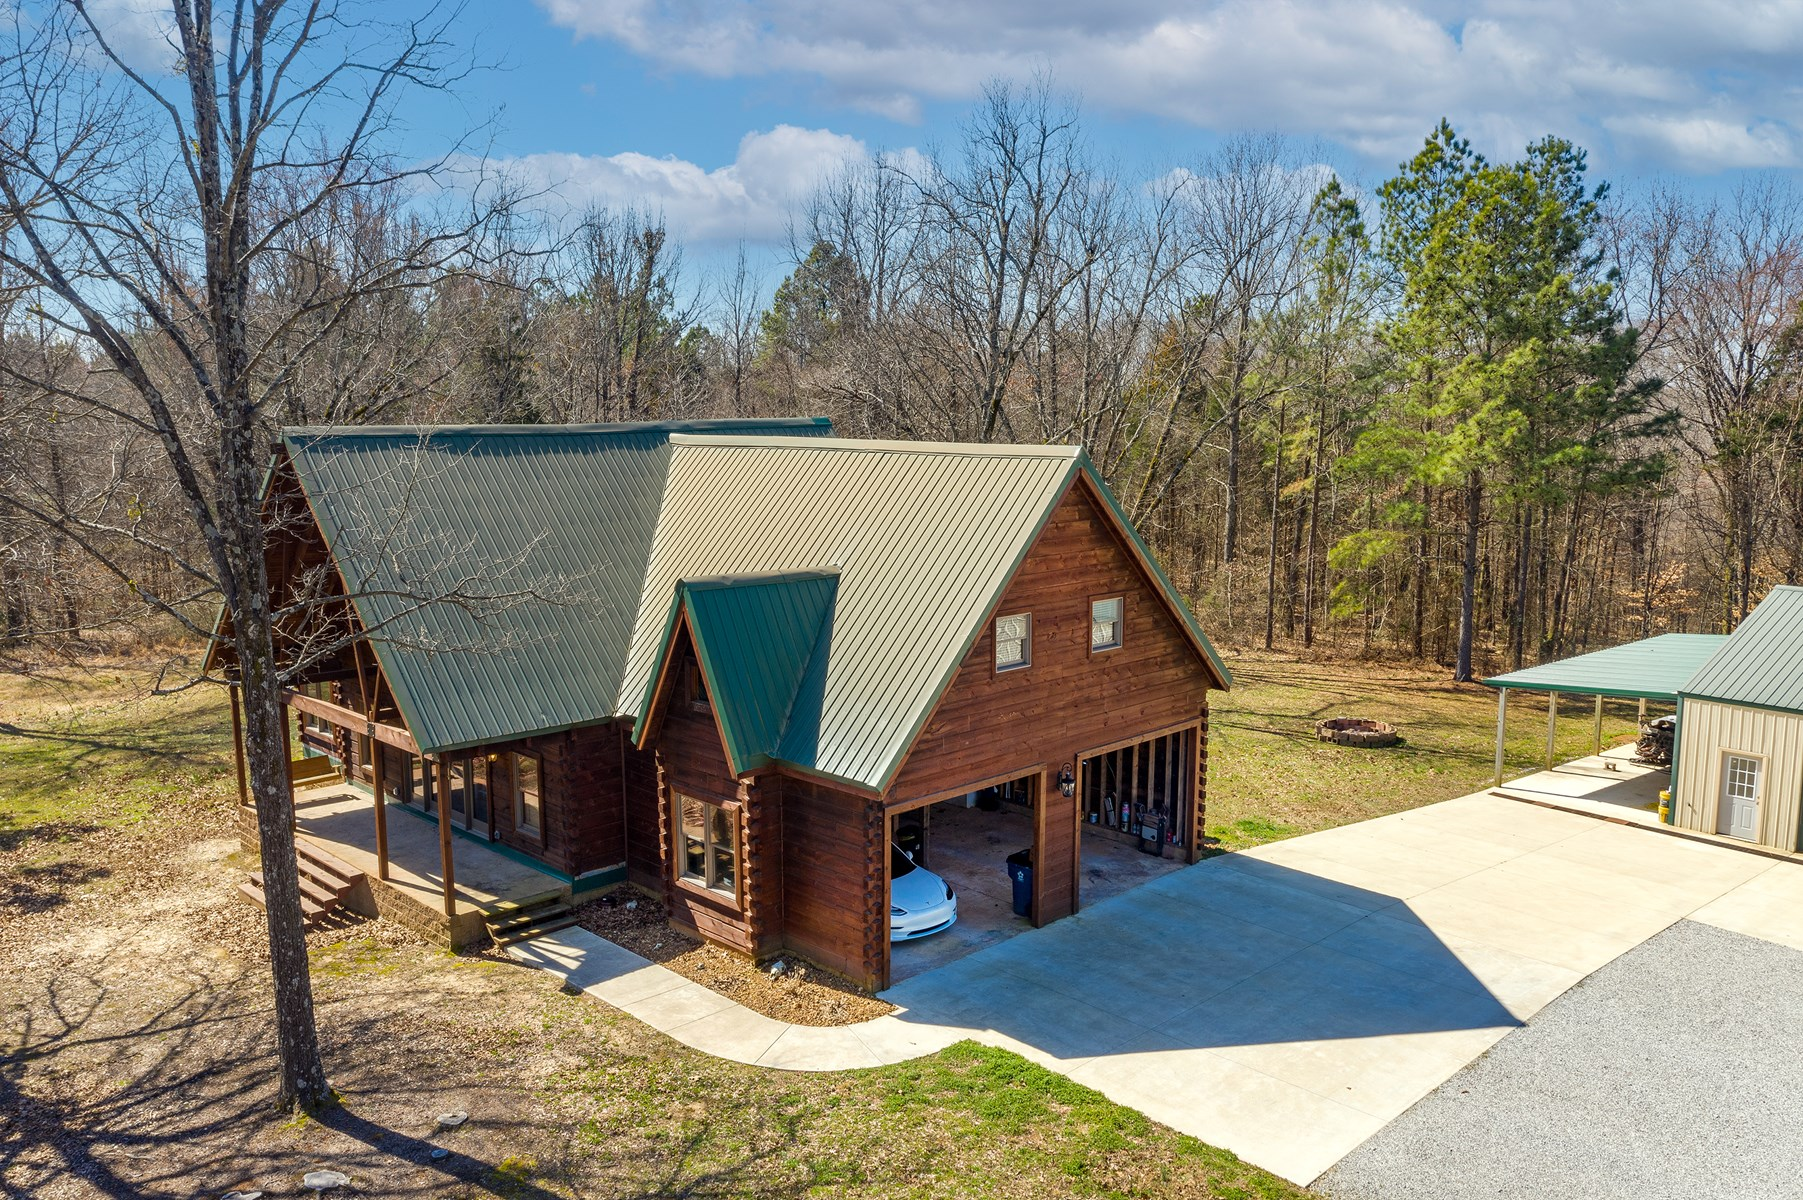 Tennessee Log Home for Sale - Private Setting in the Woods